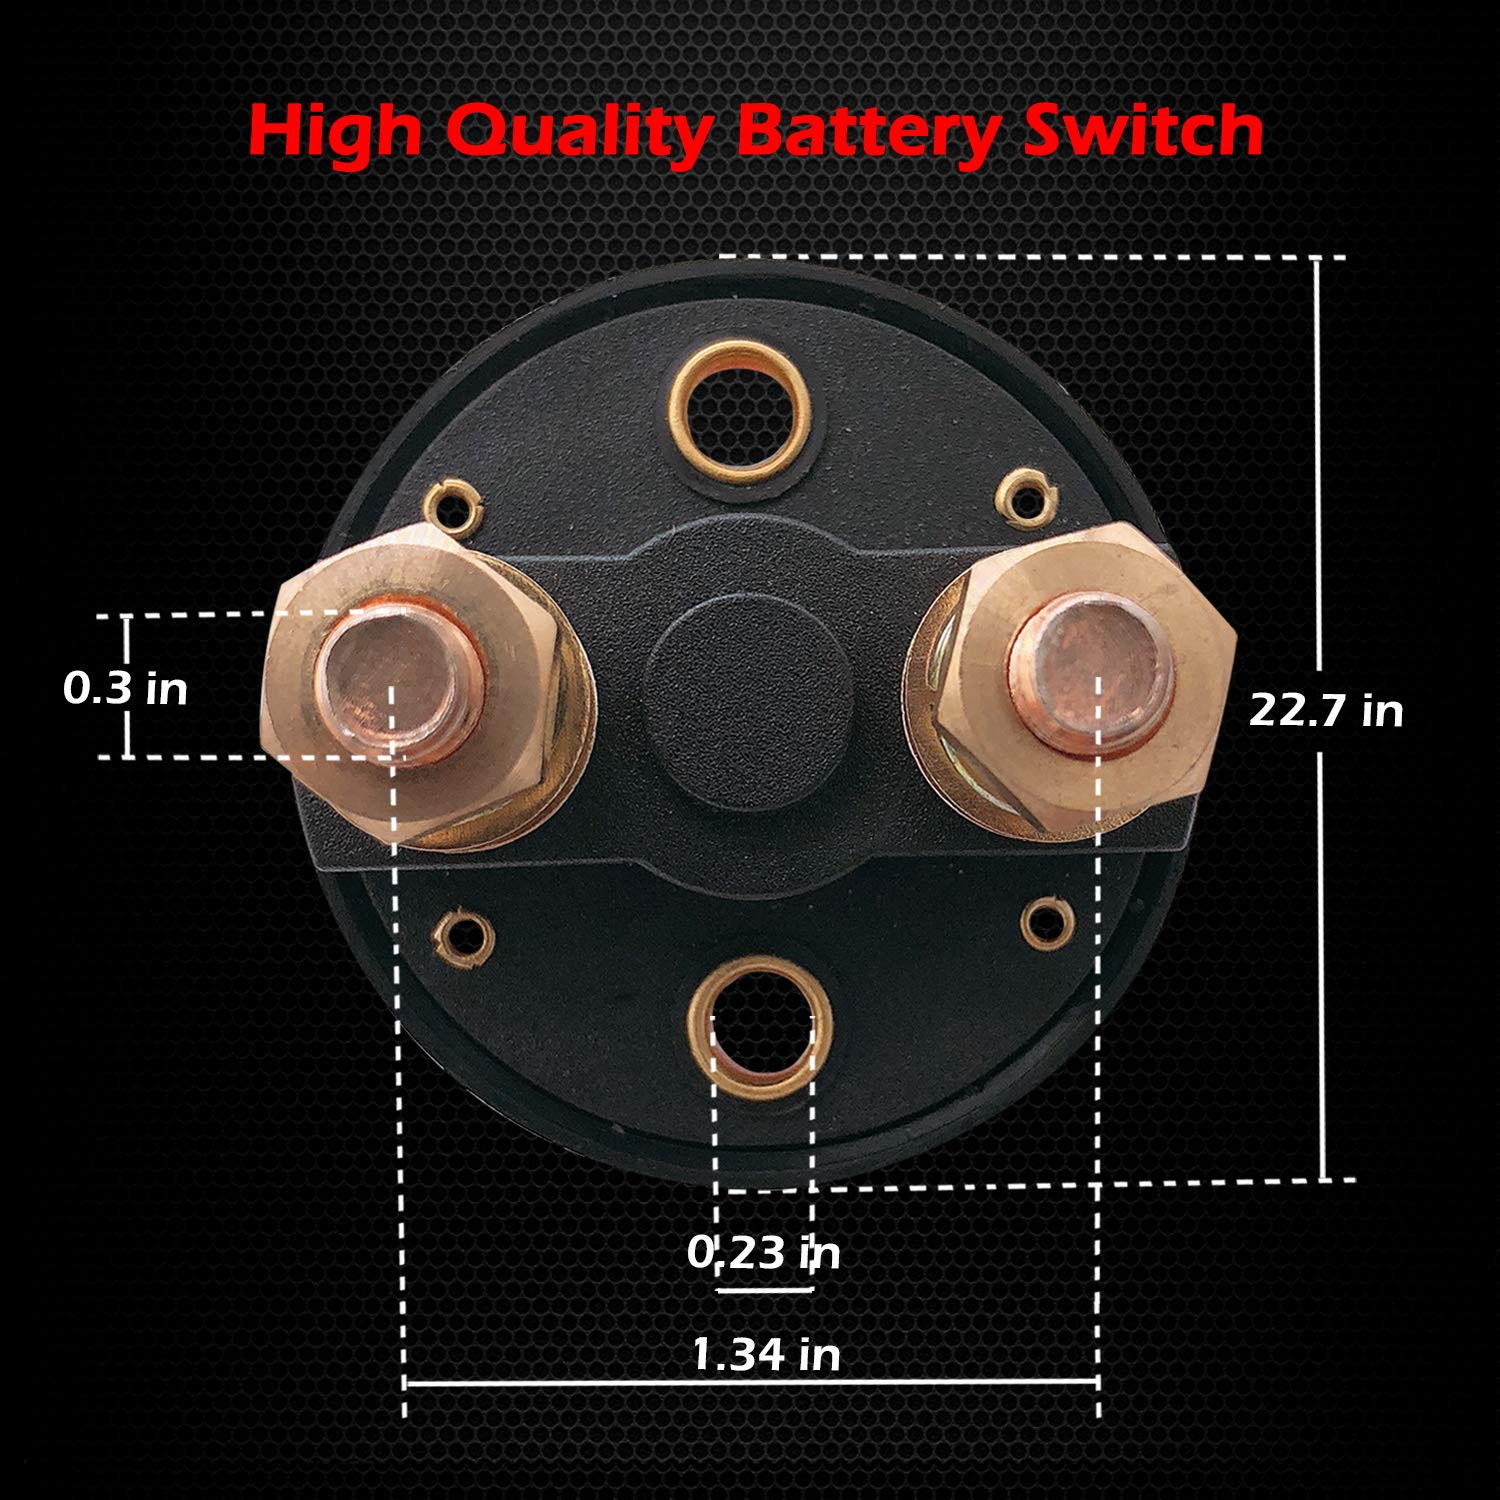 Minimprover Battery Master Disconnect Switch Battery Cut off Rotary Power Switch Battery Exhaustion Prevention General-purpose Battery Easy to Install B Terminal D Terminal Switch 2-piece Set